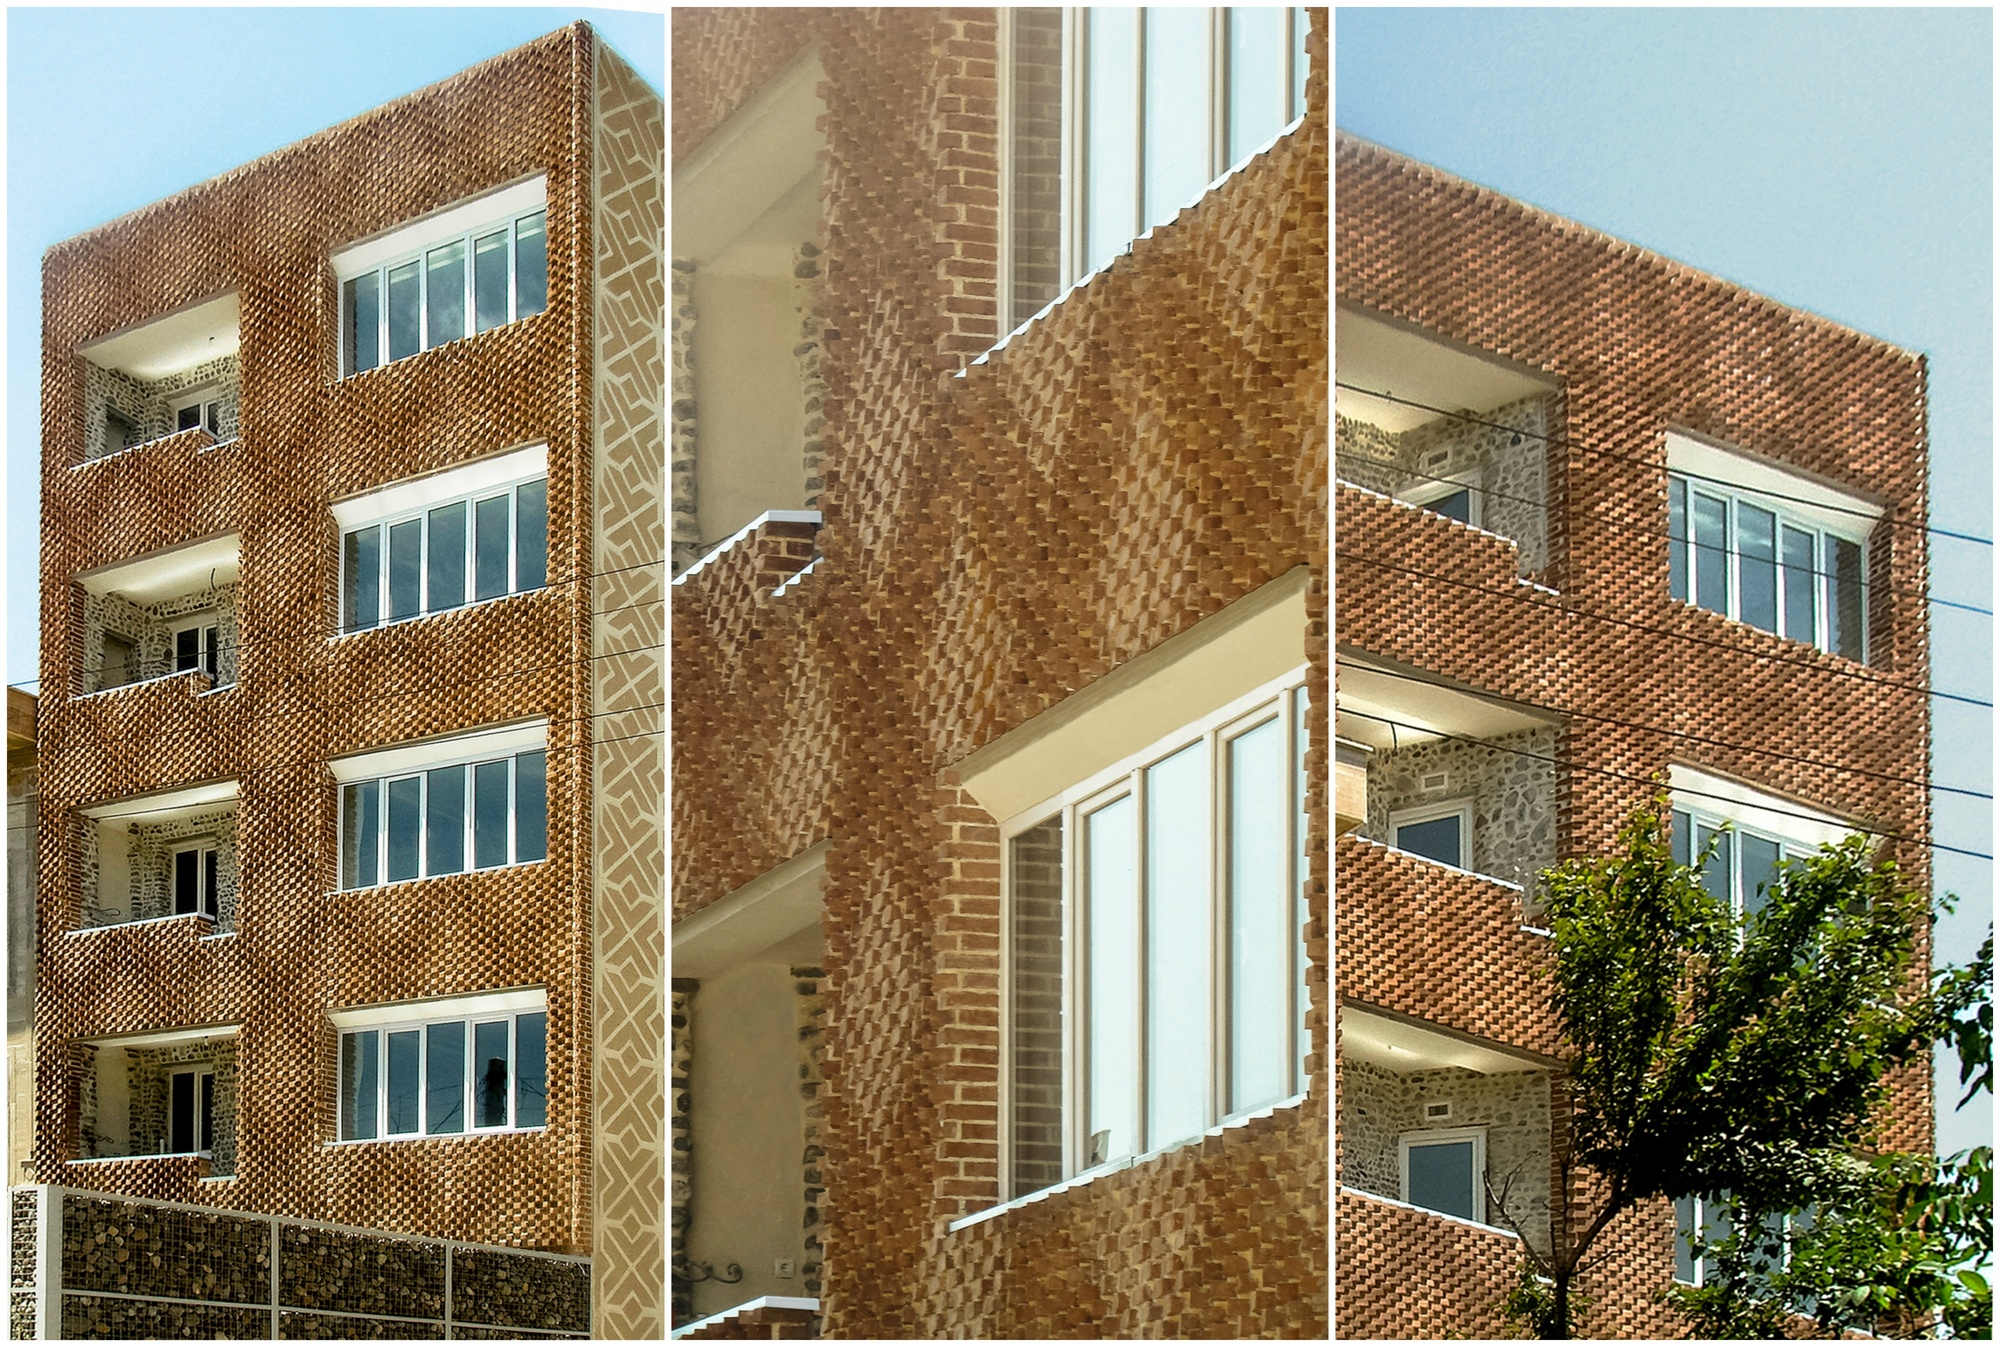 """diy Architects"" Parametric Brick Facade Built Traditional Craft Techniques"